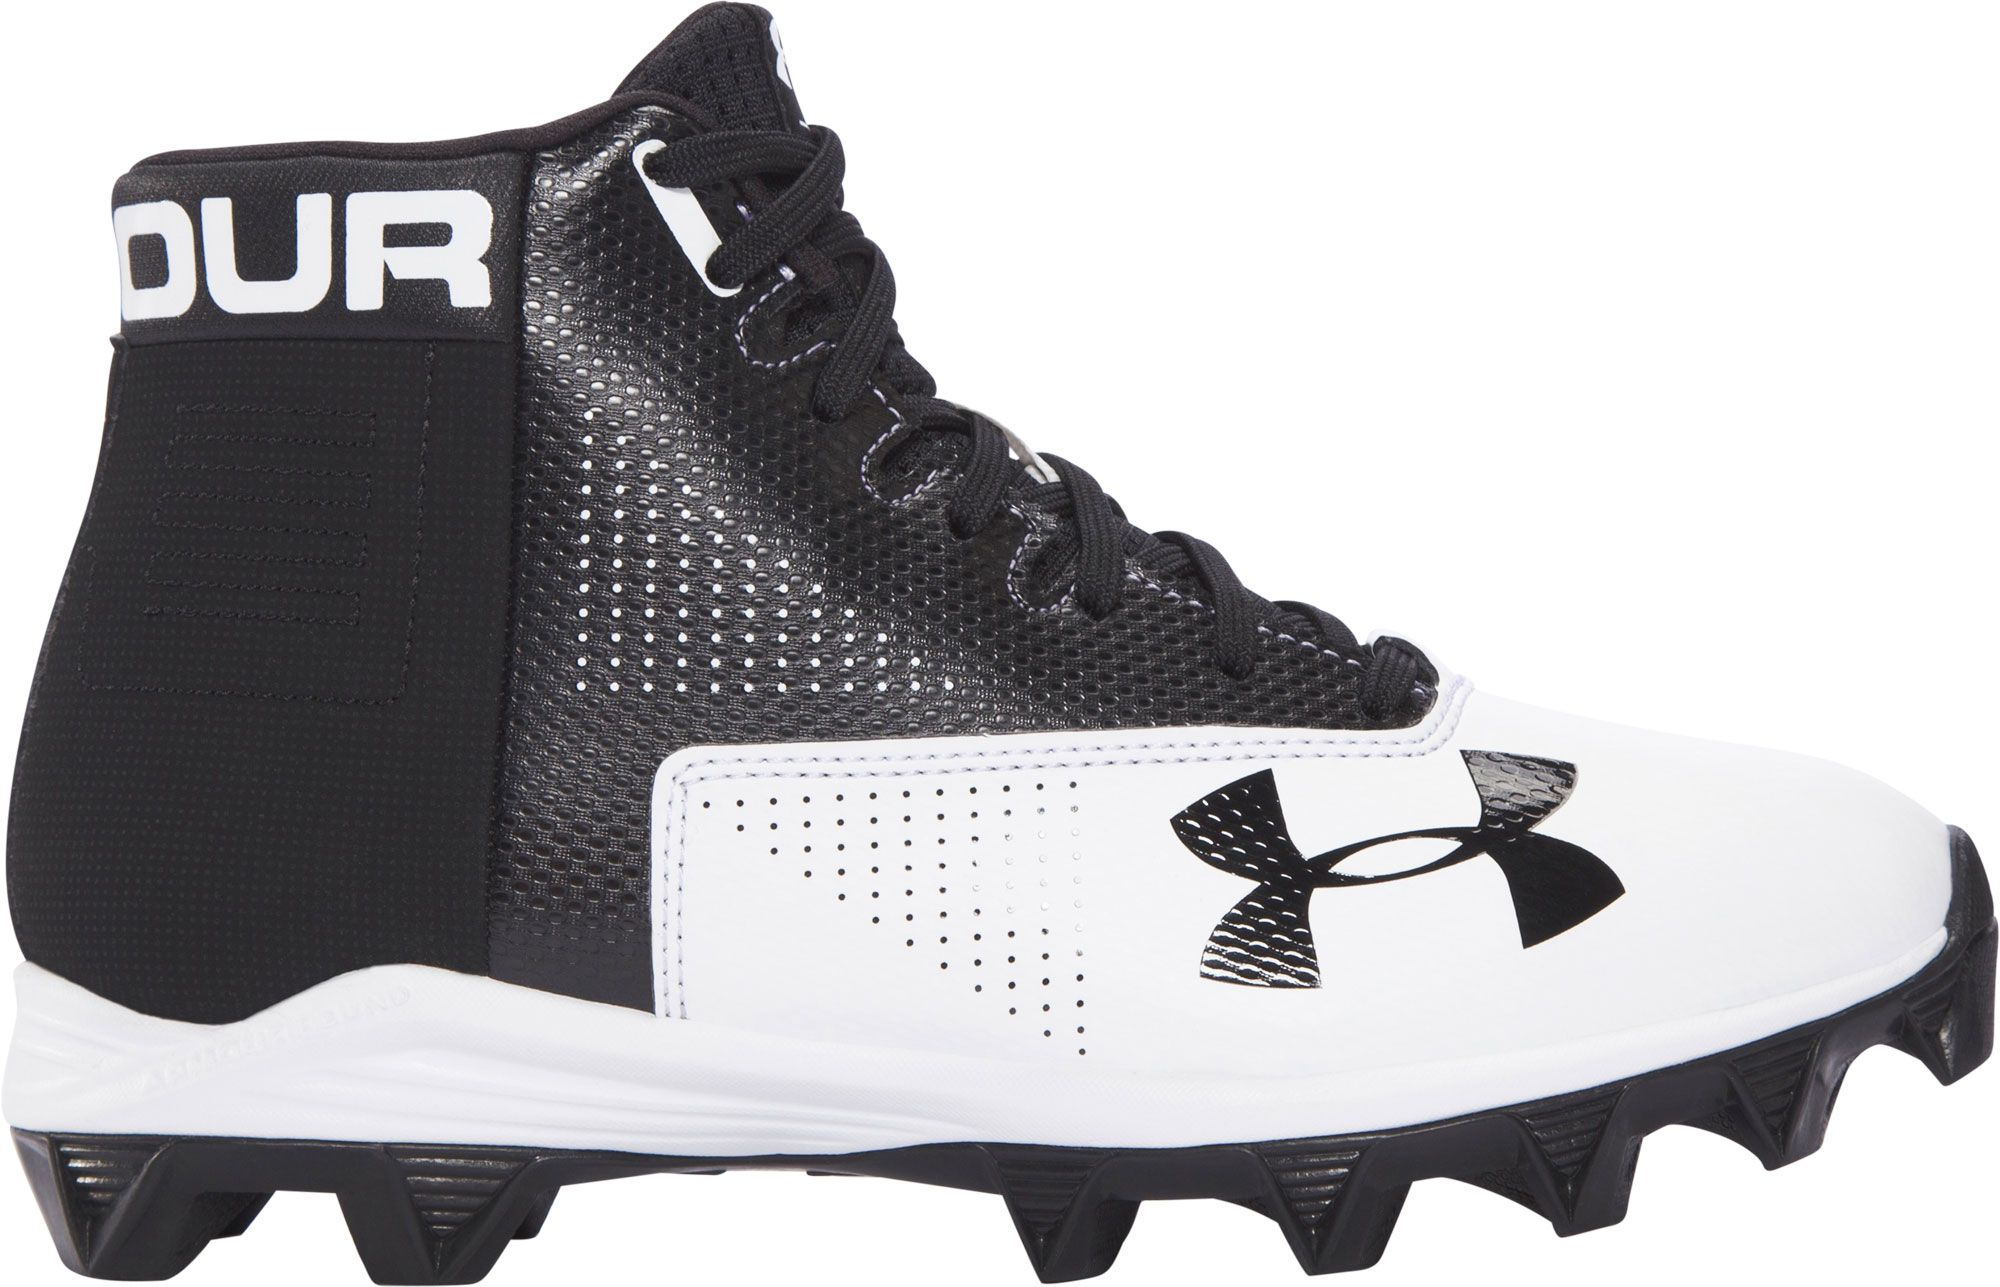 78971adcd low-cost Under Armour Kids Renegade Mid RM Football Cleats DICKS Sporting  Goods